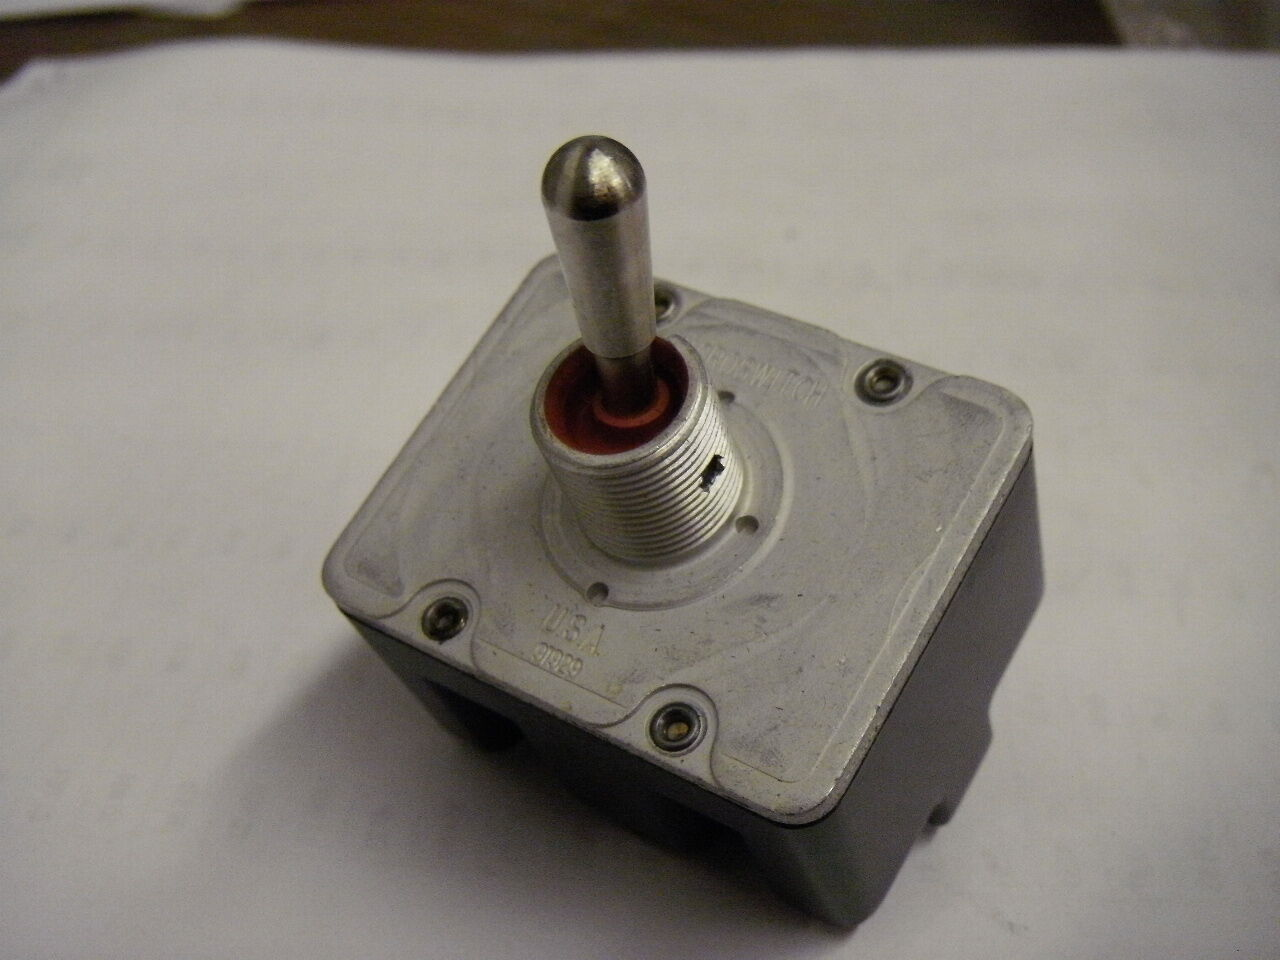 Honeywell 4tl5 3 Screw Terminal Toggle Switch 4 Pole 2 Position 20 Amp Sealed Spdt Onoffon Norton Secured Powered By Verisign